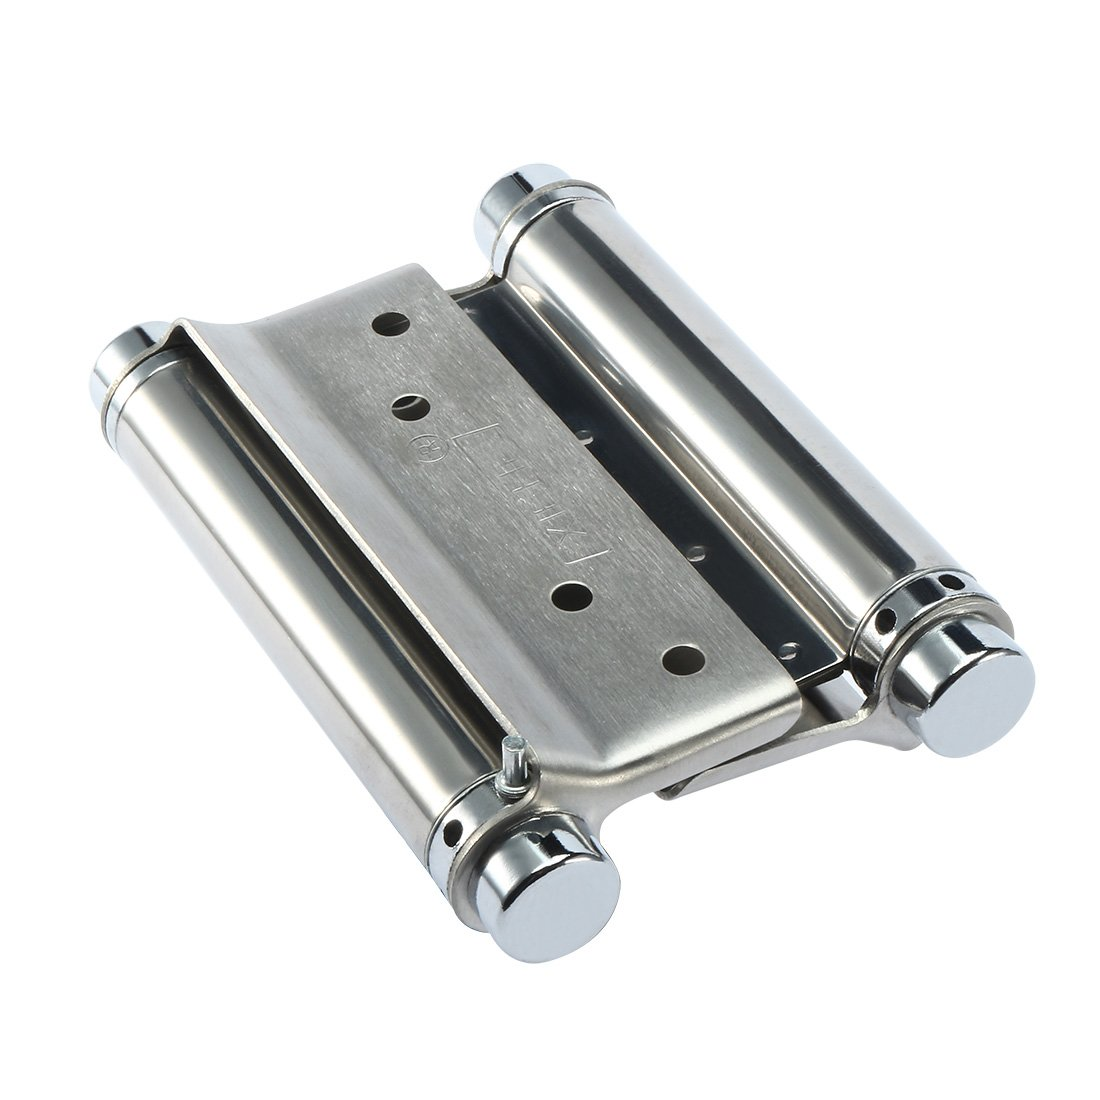 uxcell 2PCS 4 inch Double Action Spring Hinges for Saloon Cafe Swing Doors